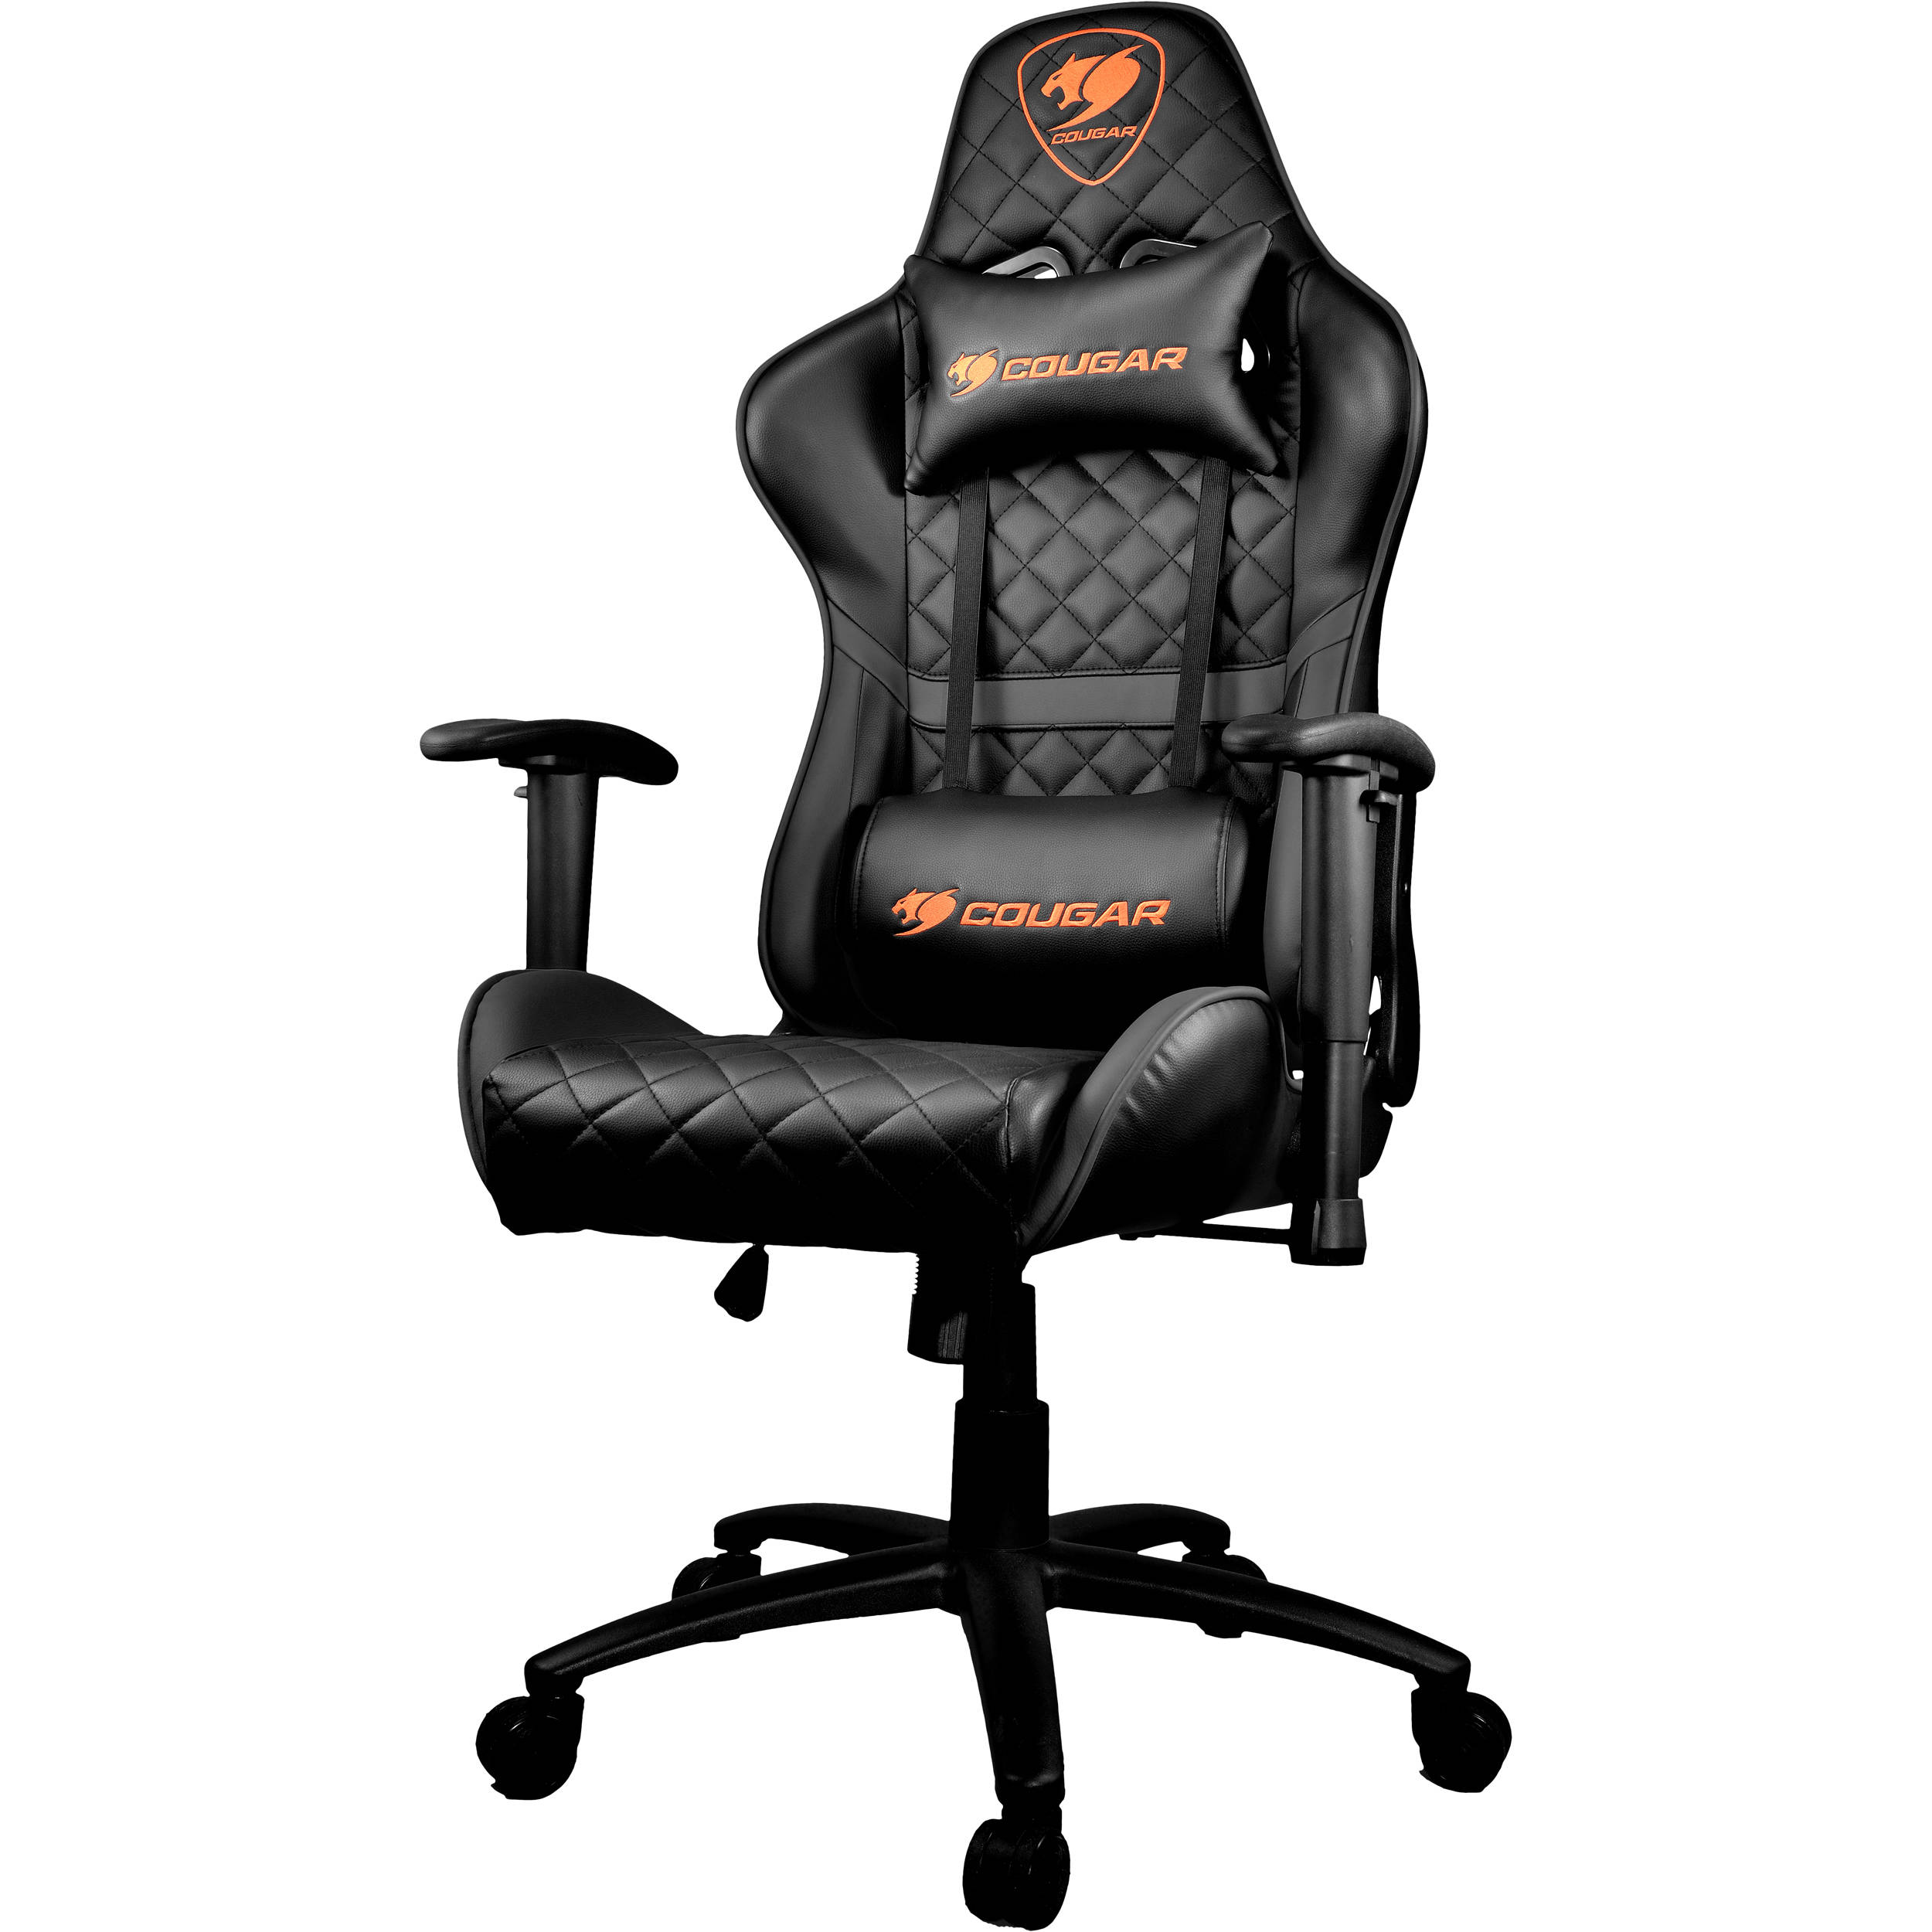 Stupendous Cougar Armor One Gaming Chair Black Uwap Interior Chair Design Uwaporg